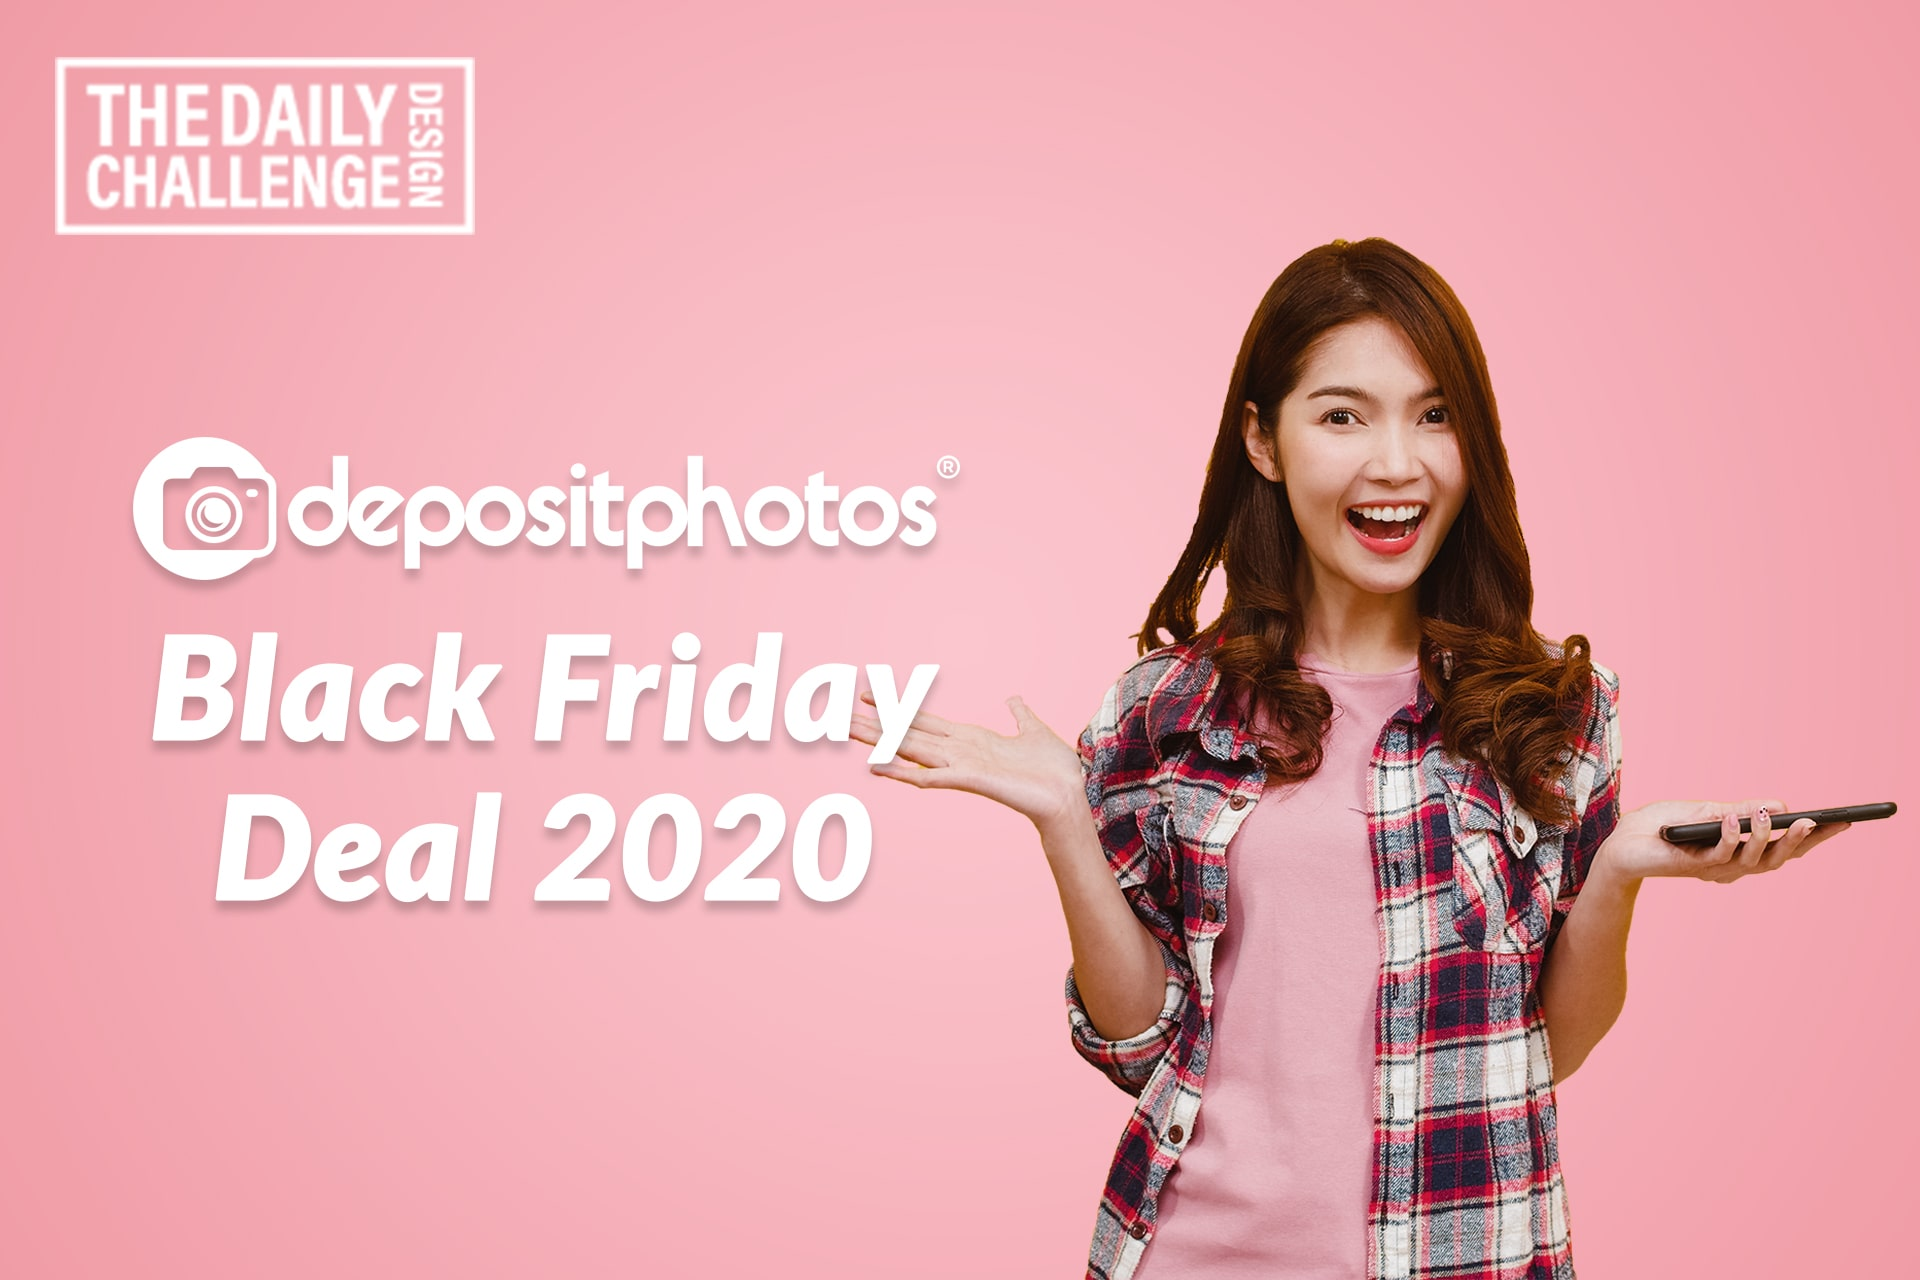 Depositphotos Black Friday Deals